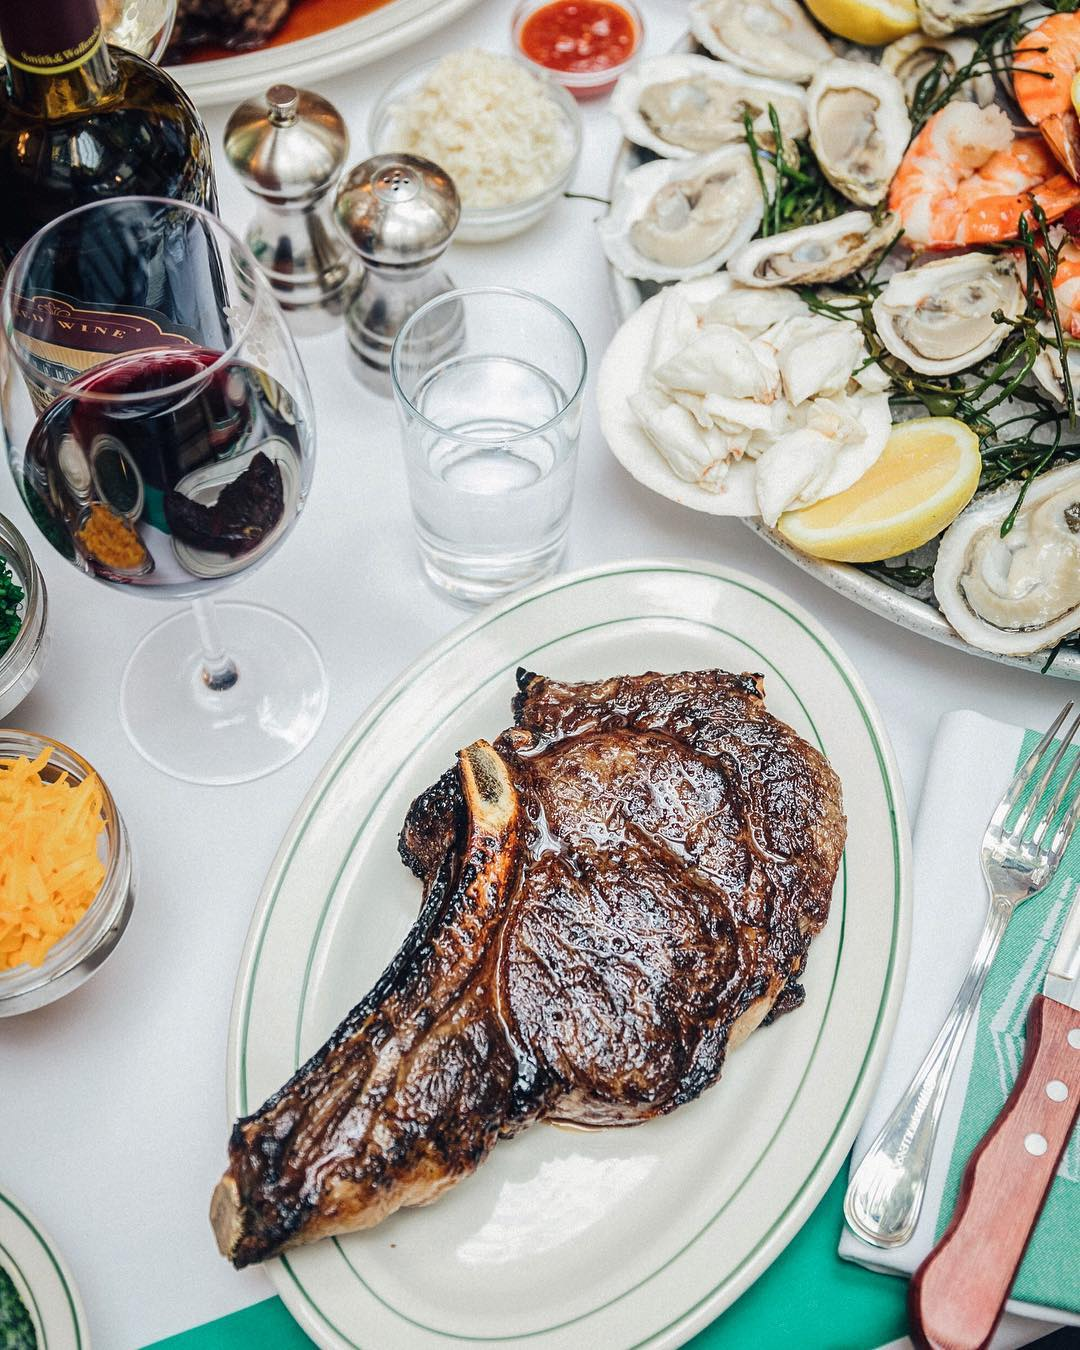 Smith & Wollensky in NYC is a classic steakhouse experience.